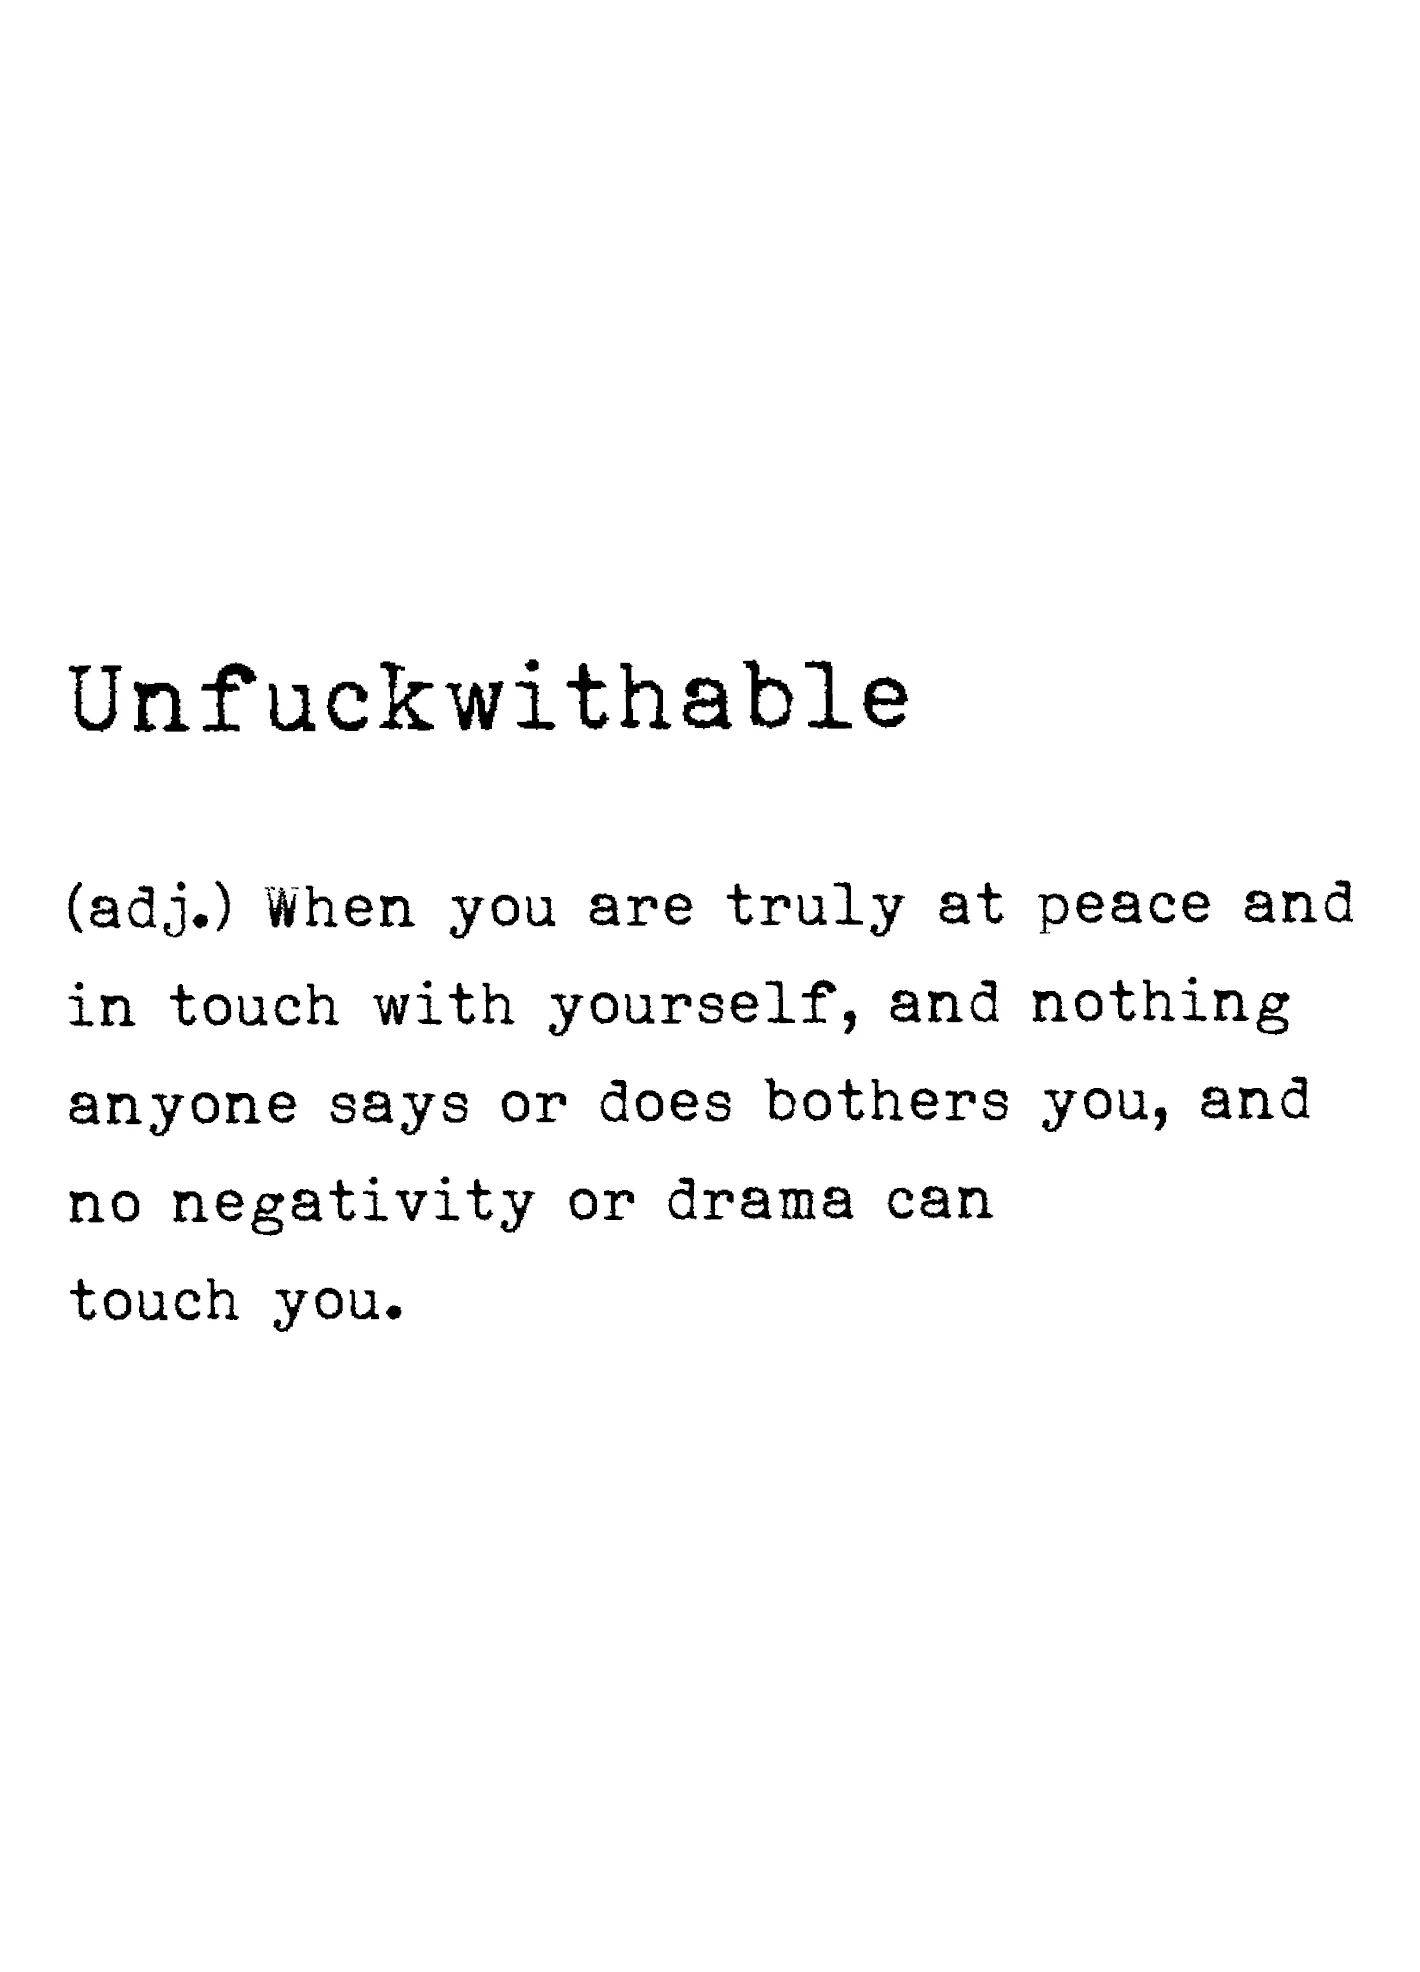 Unfuckwithable (adj.) When you are truly at peace and in touch with yourself, and nothing anyone says or does bothers you, and no negativity or drama can touch you. https://inspirational.ly